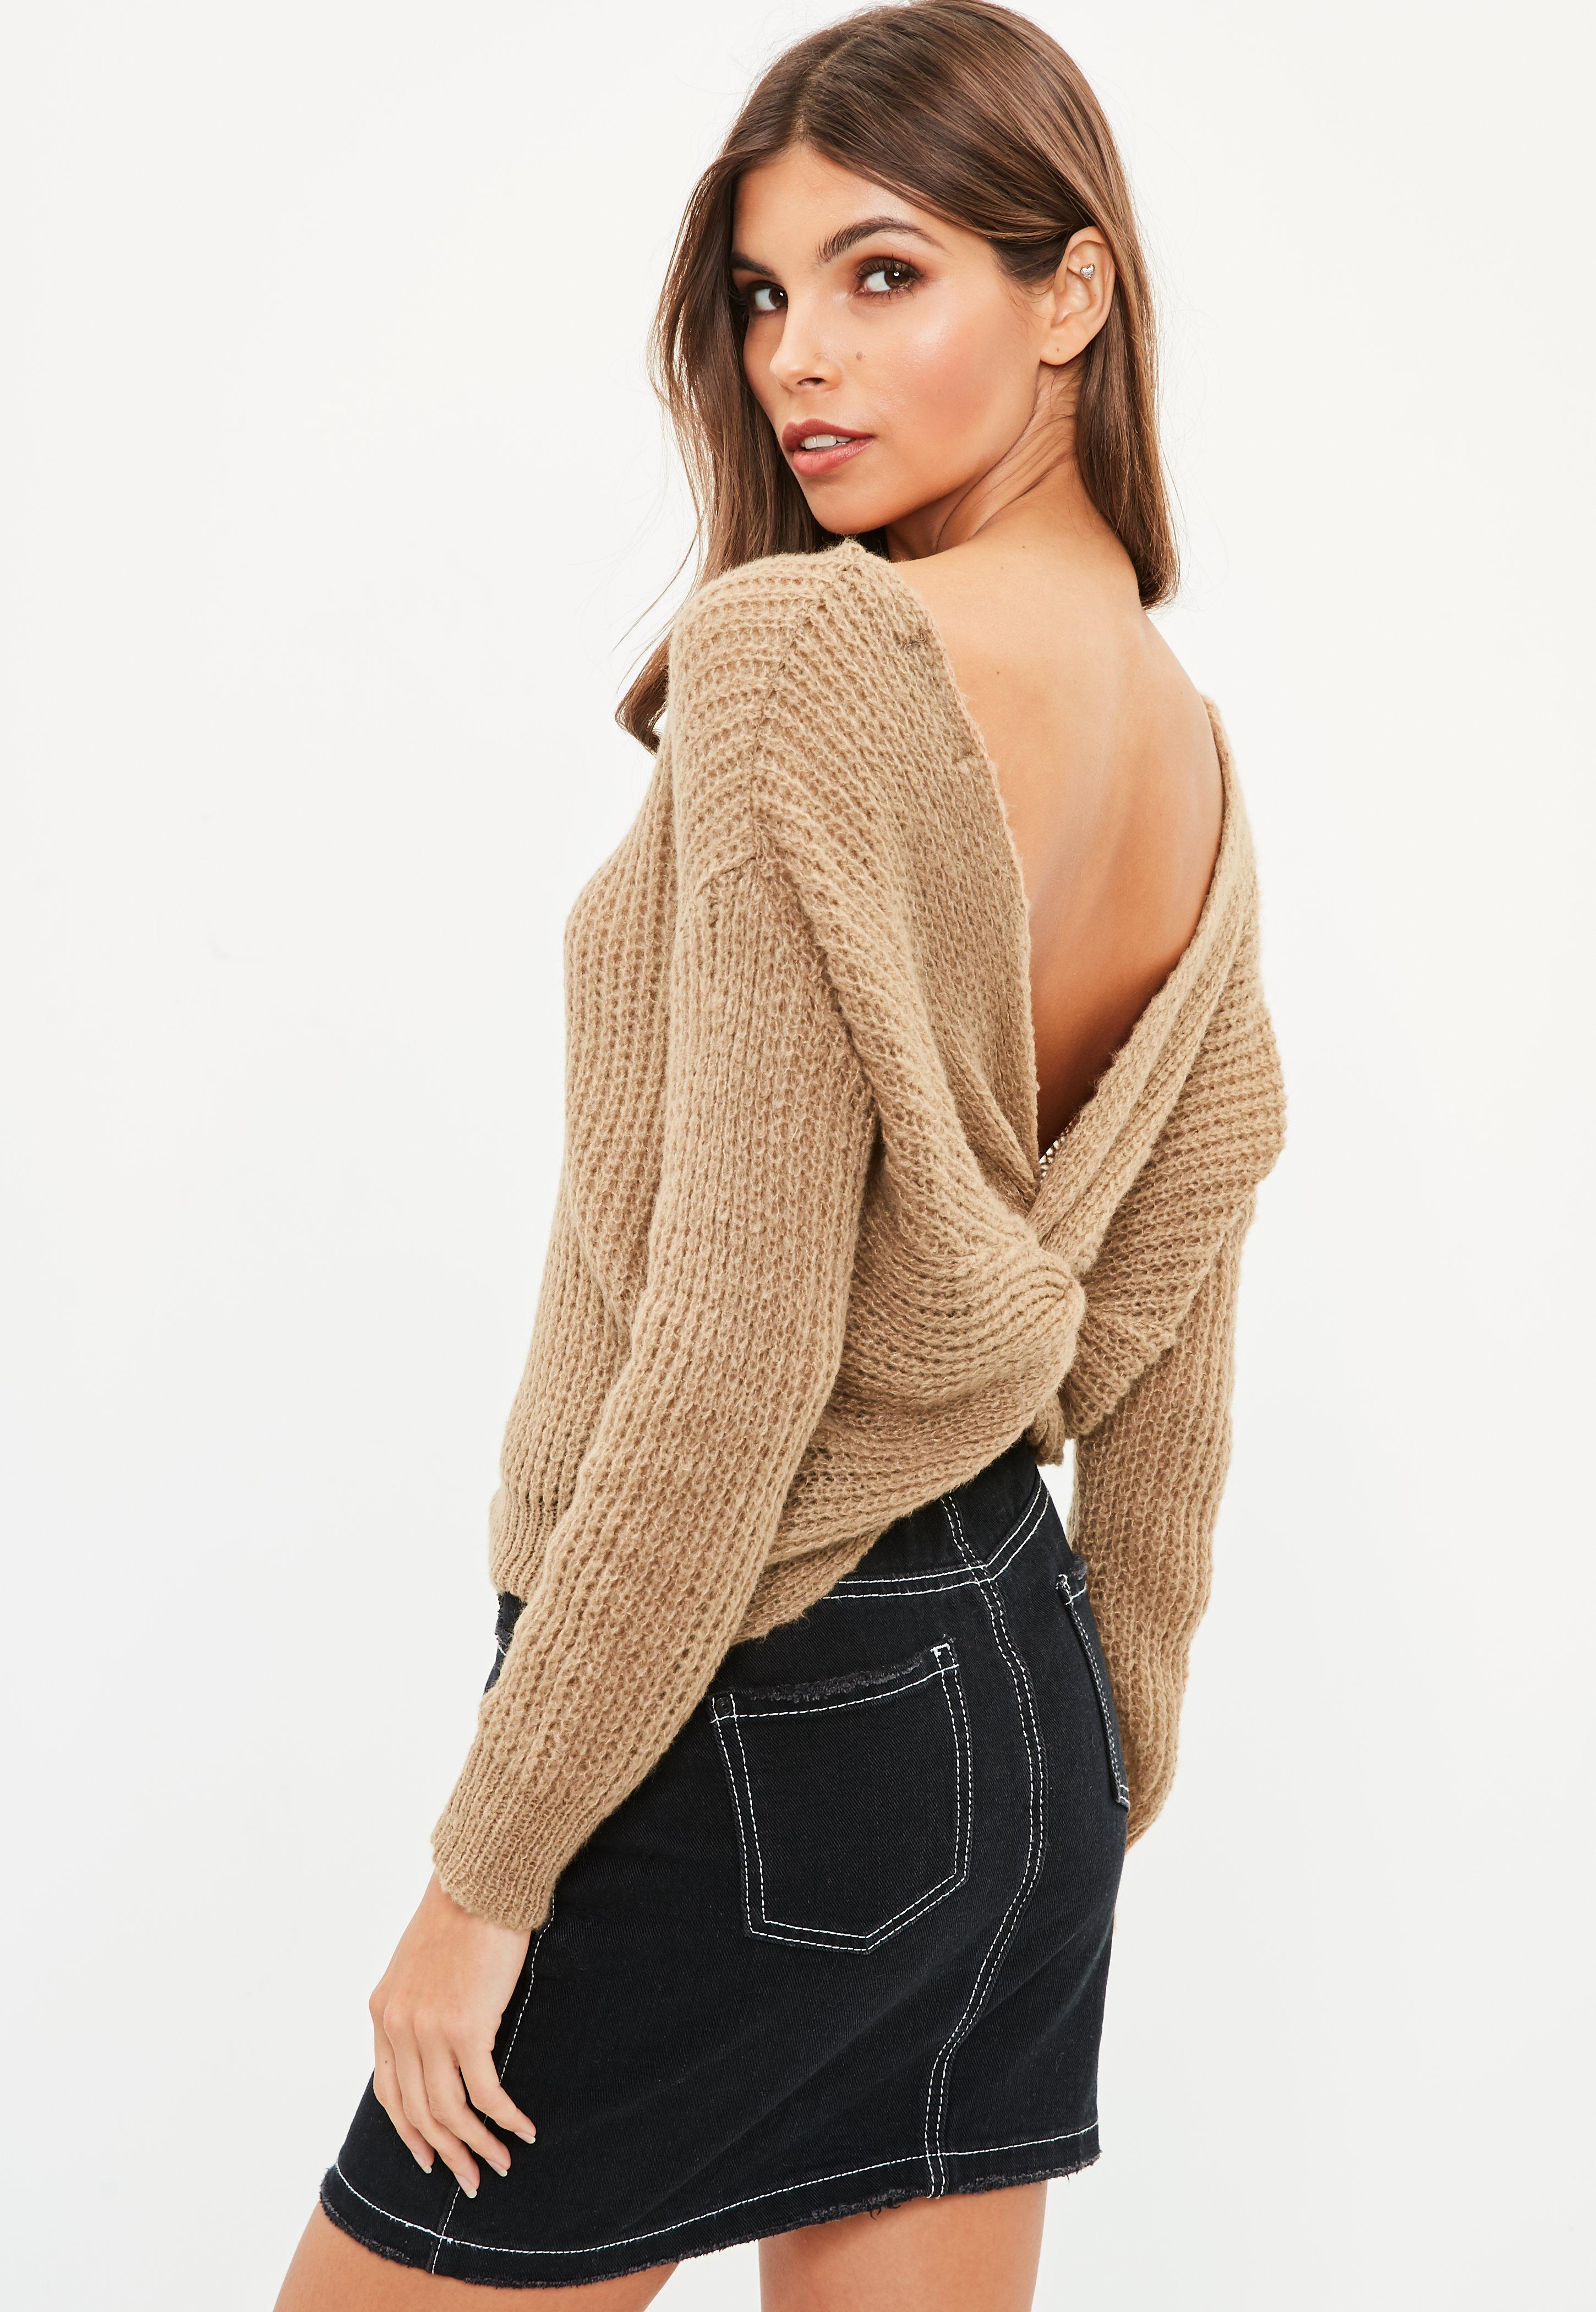 High Quality Cheap Price Clearance Cheap Online Missguided Petite Fluffy Twist Back Knitted Jumper Pay With Visa Cheap Price Sale Factory Outlet High Quality DWwyBAYL